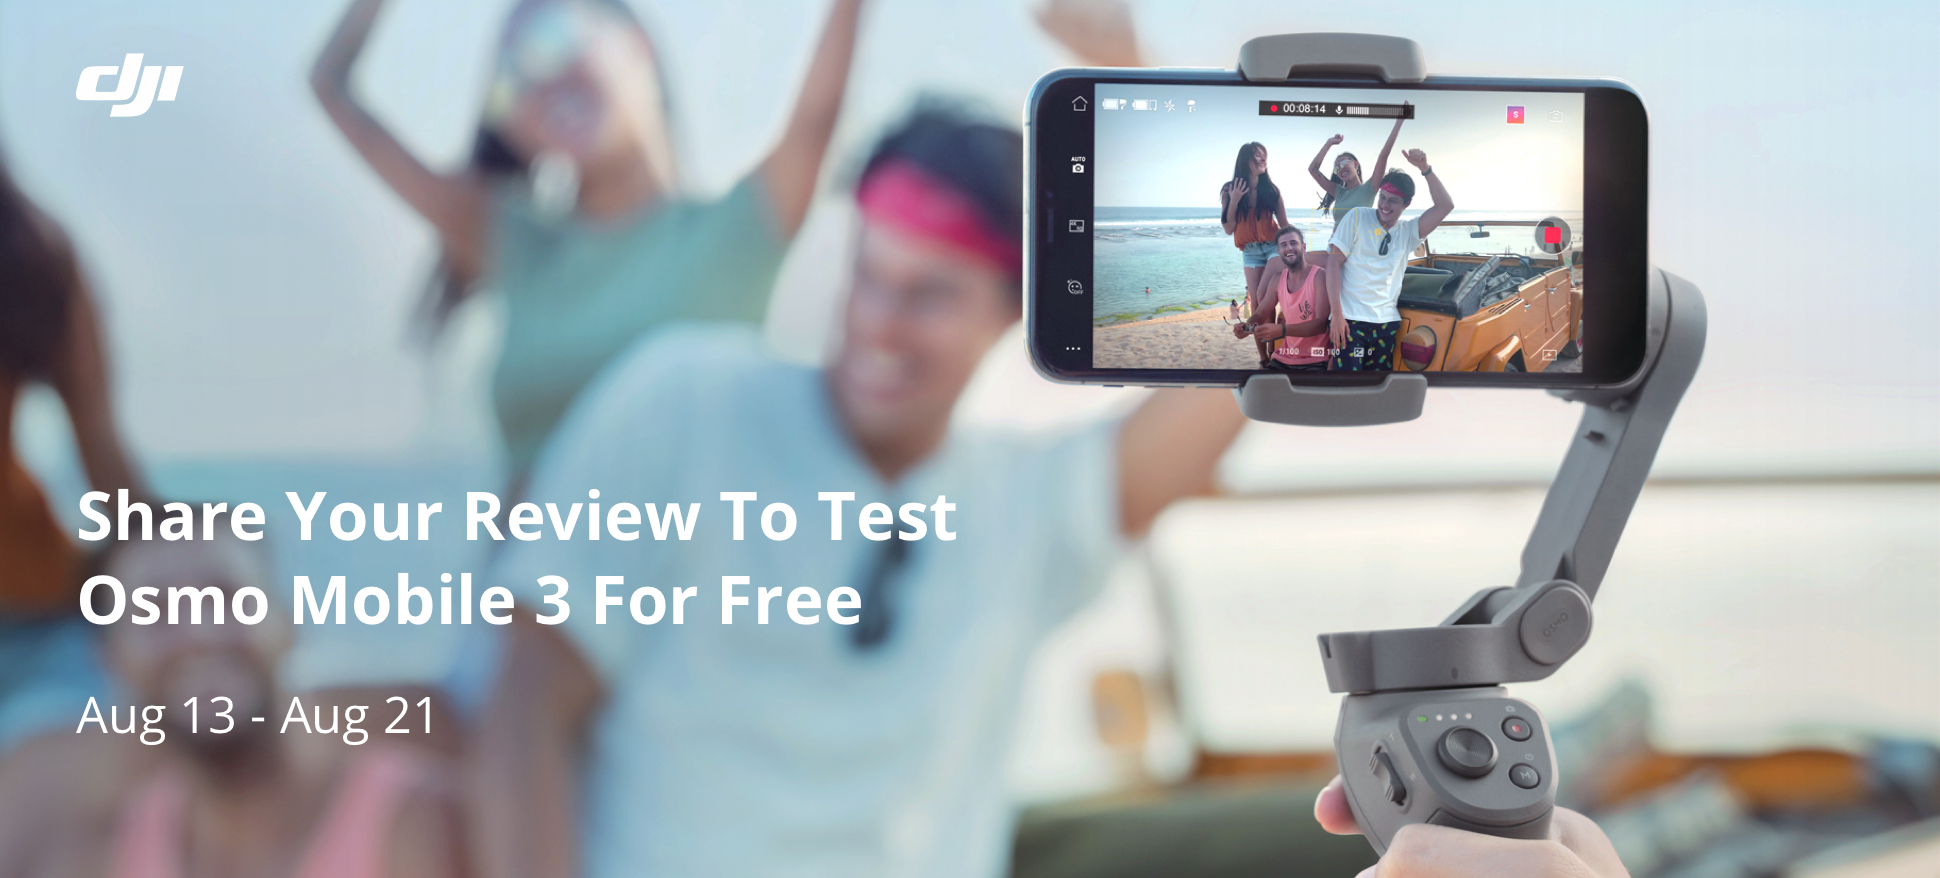 DJI Osmo Mobile 3 Released-Capture Life's Memorable Moments | DJI FORUM